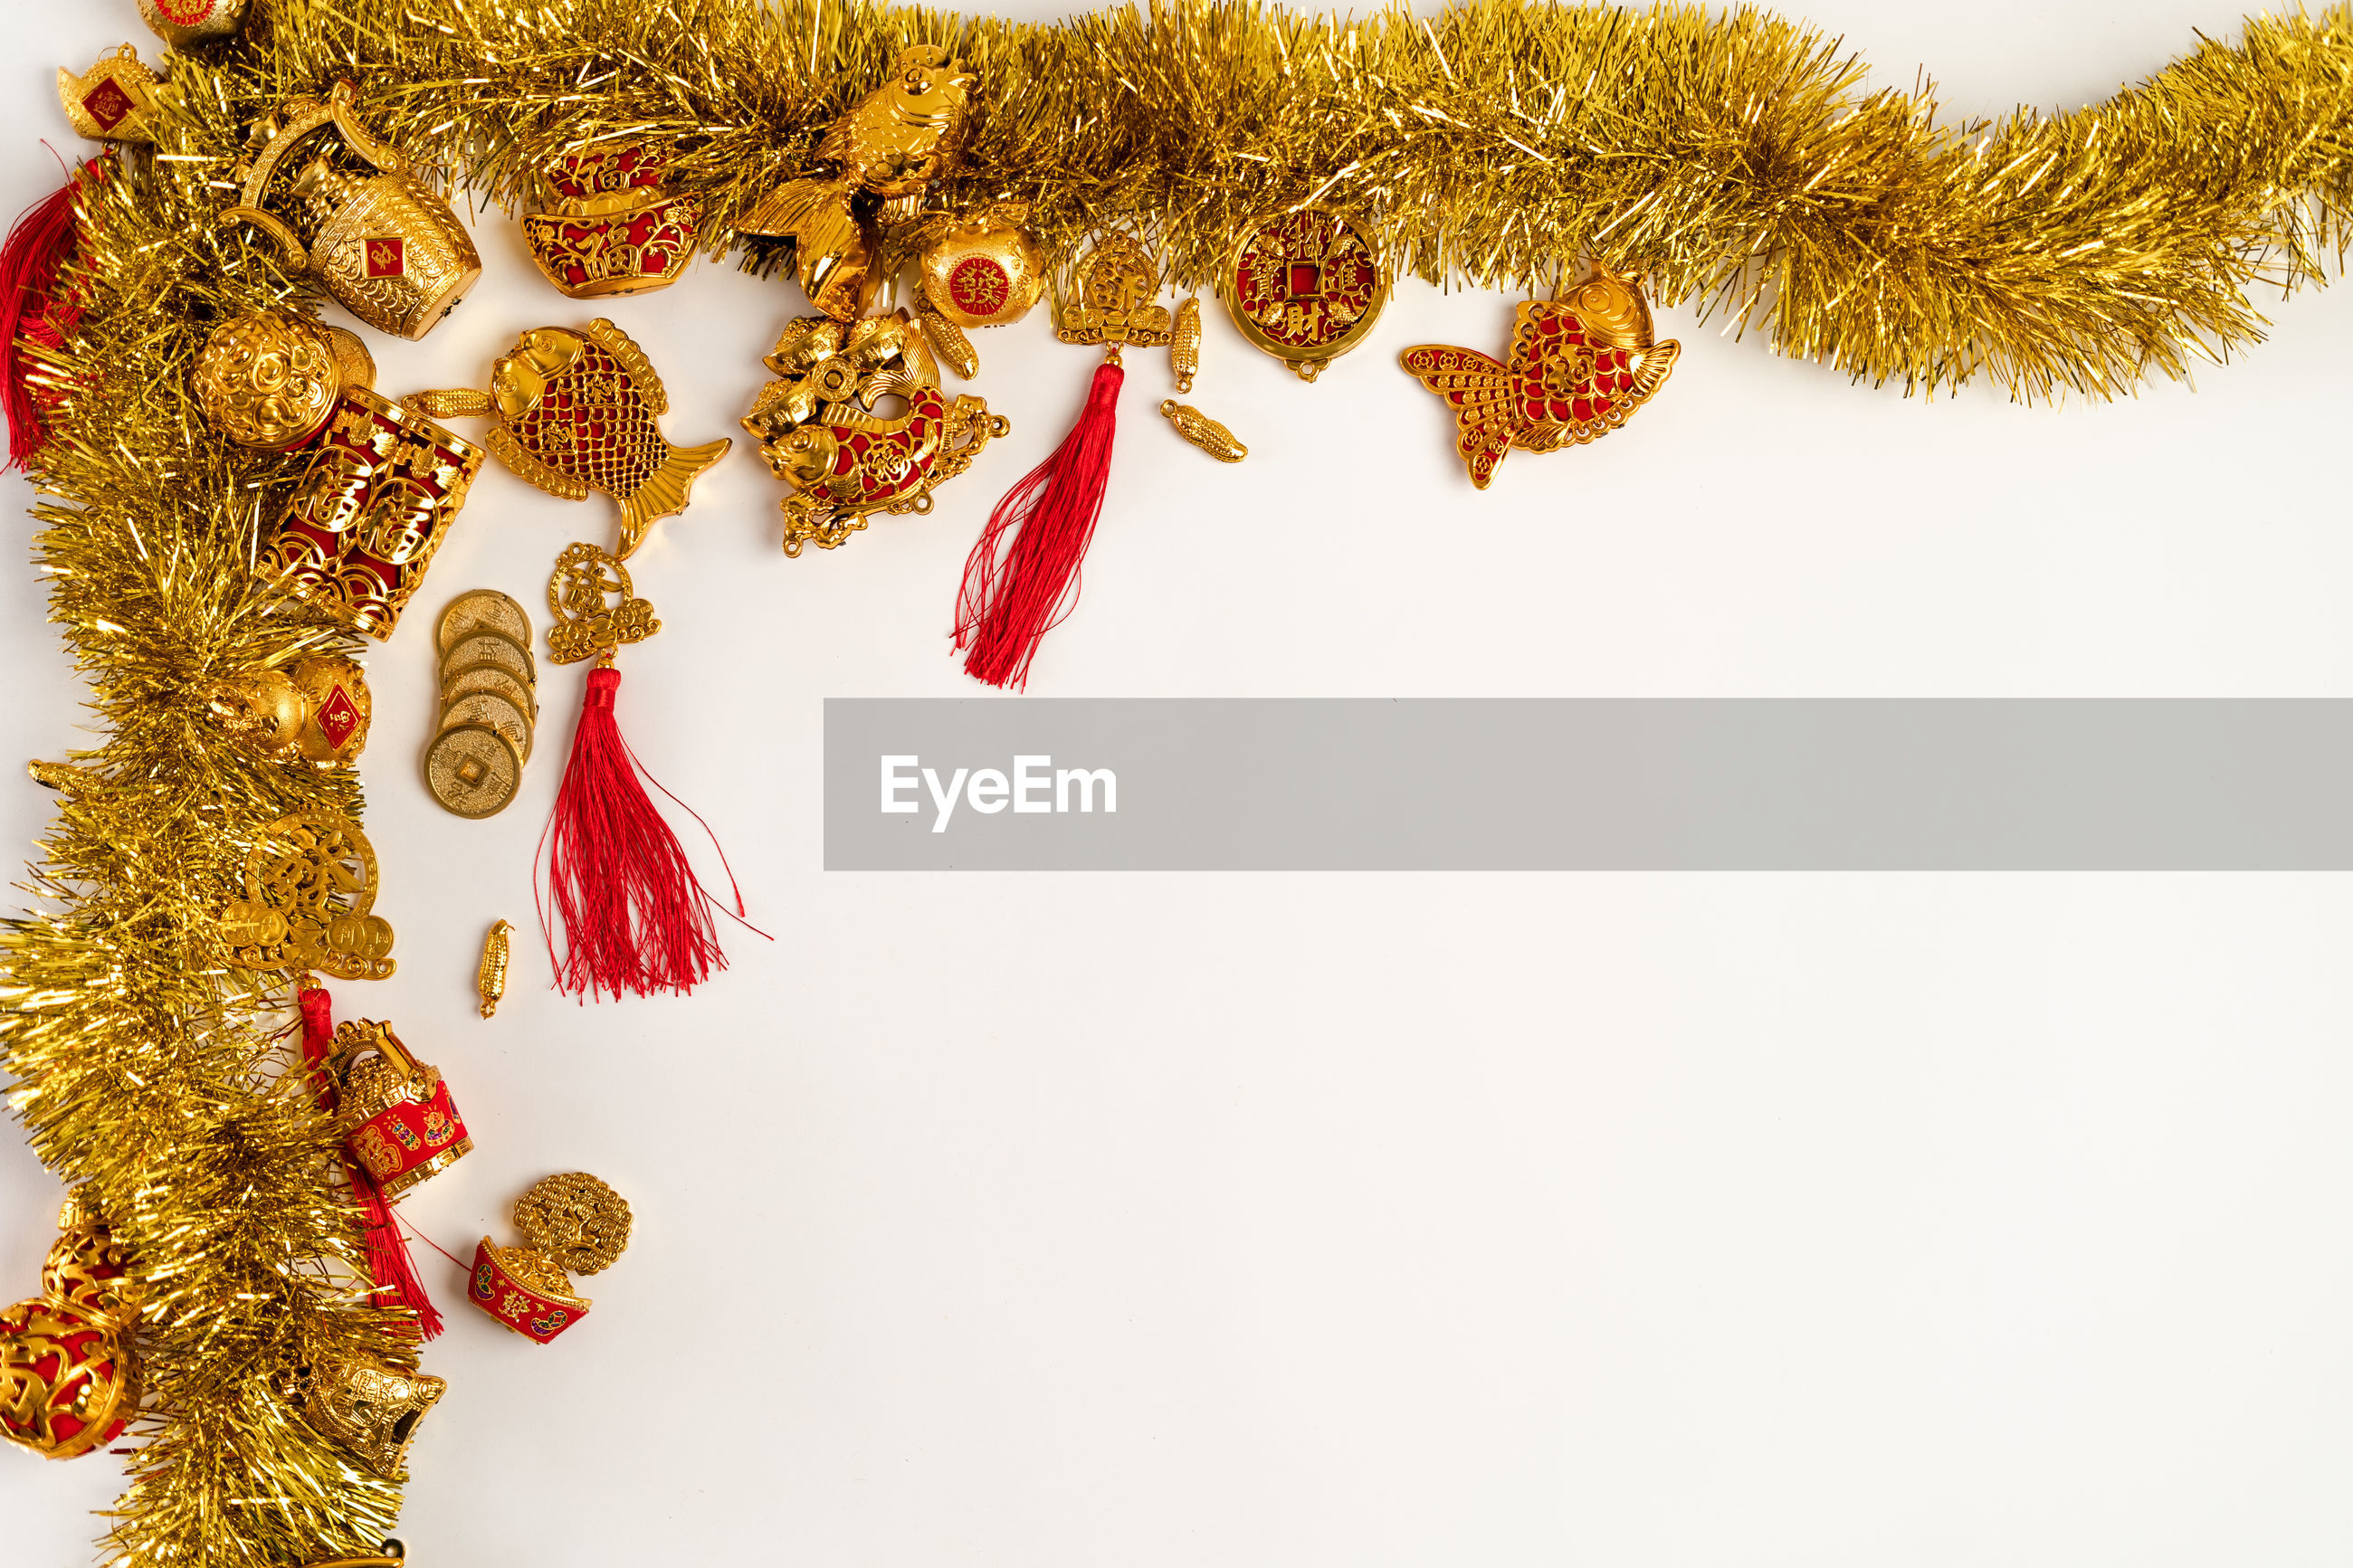 High angle view of decorations on white background